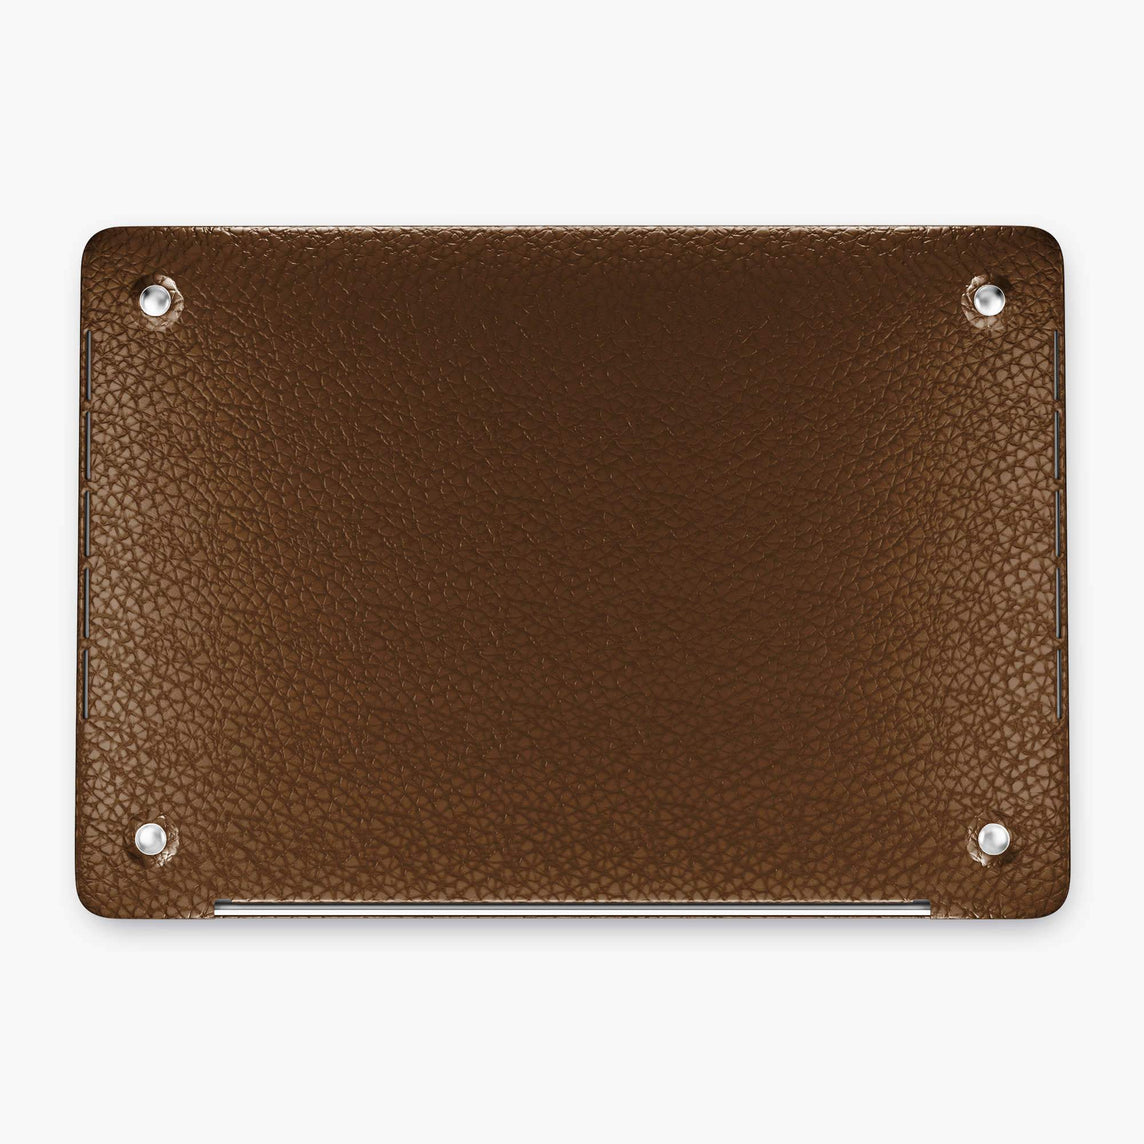 Calfskin Macbook Case Apple Mac Book 15'' Pro | Brown - Stainless Steel